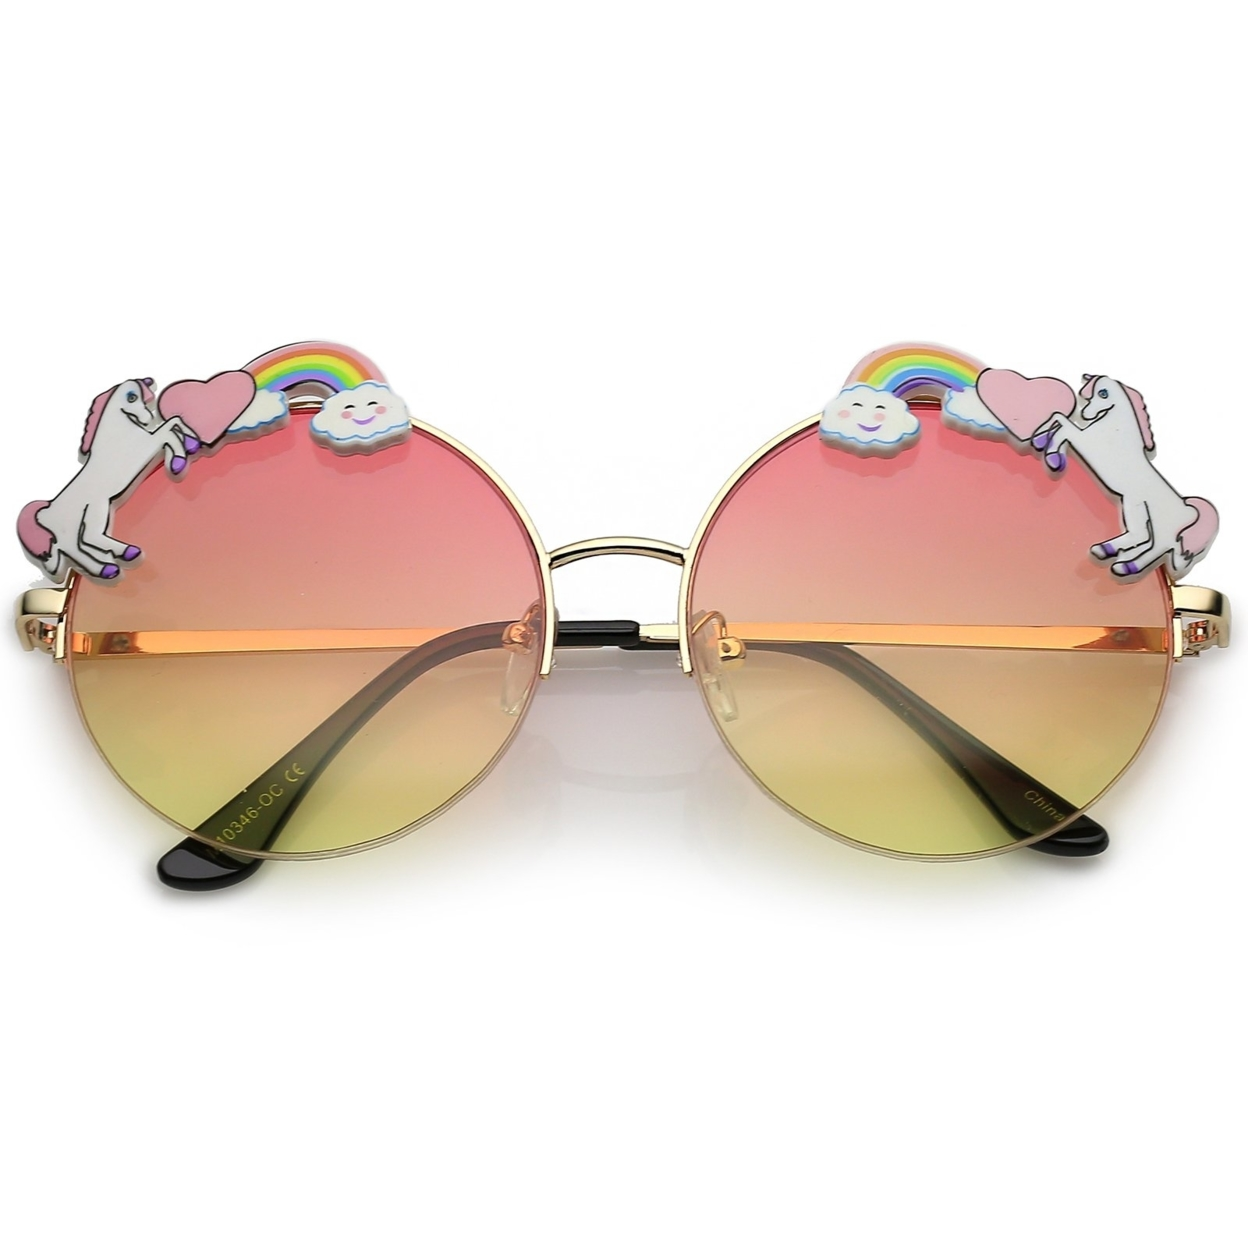 Unicorn Rainbow Semi Rimless Round Sunglasses With Gradient Colored Lens 56mm (5)